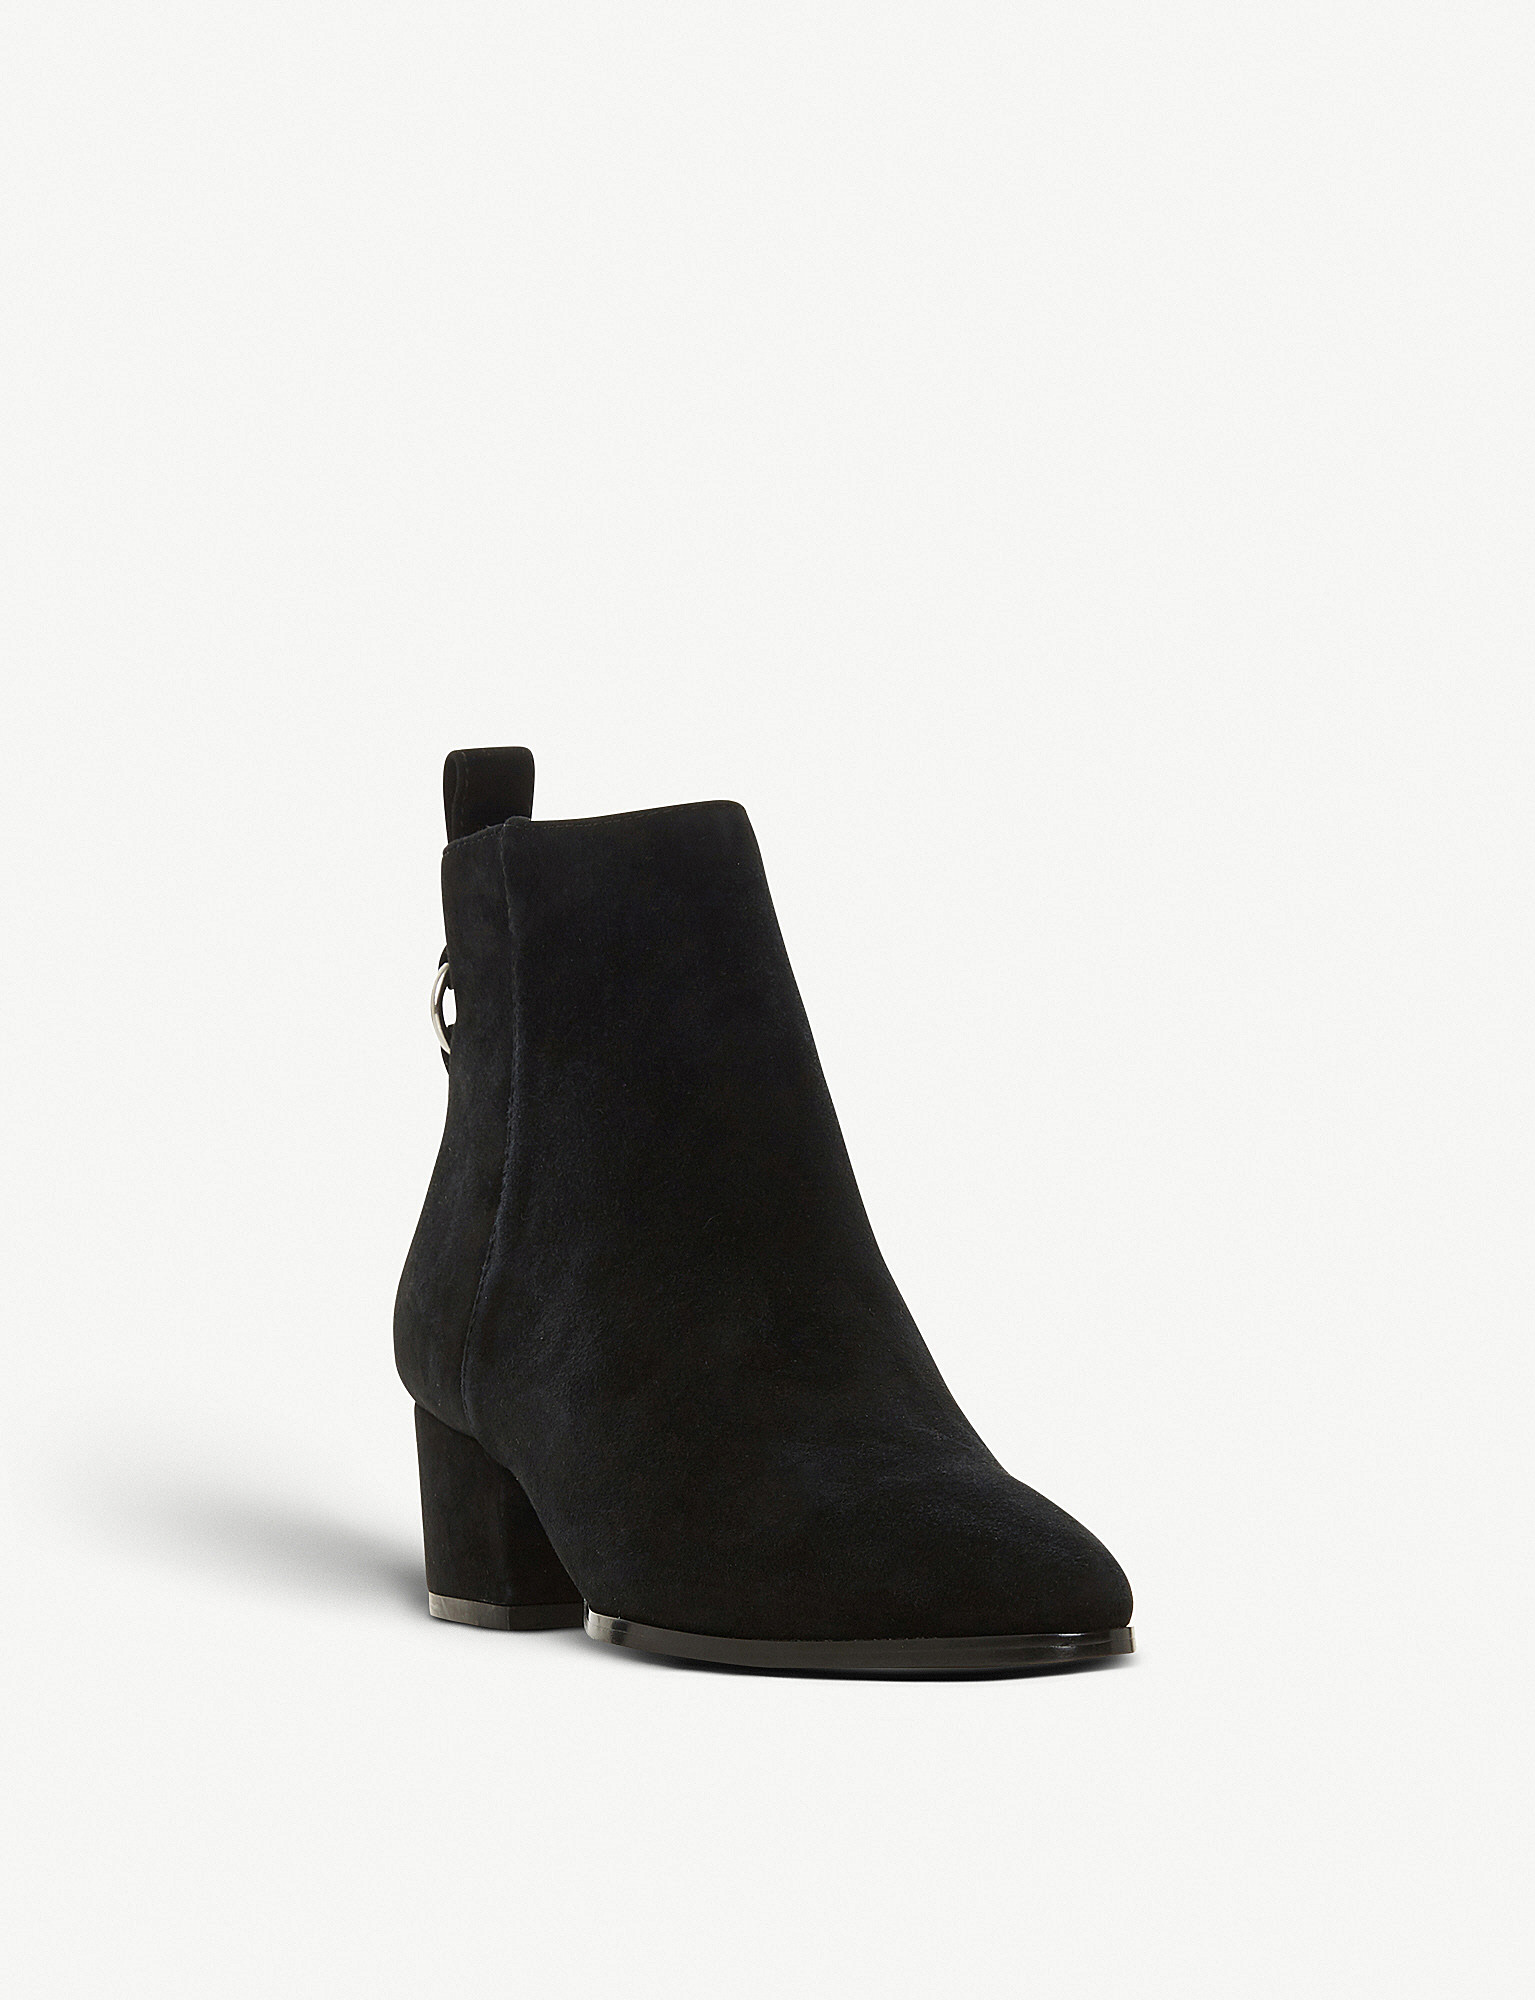 6f5a06ff318 STEVE MADDEN - Clover ring-detail suede ankle boots